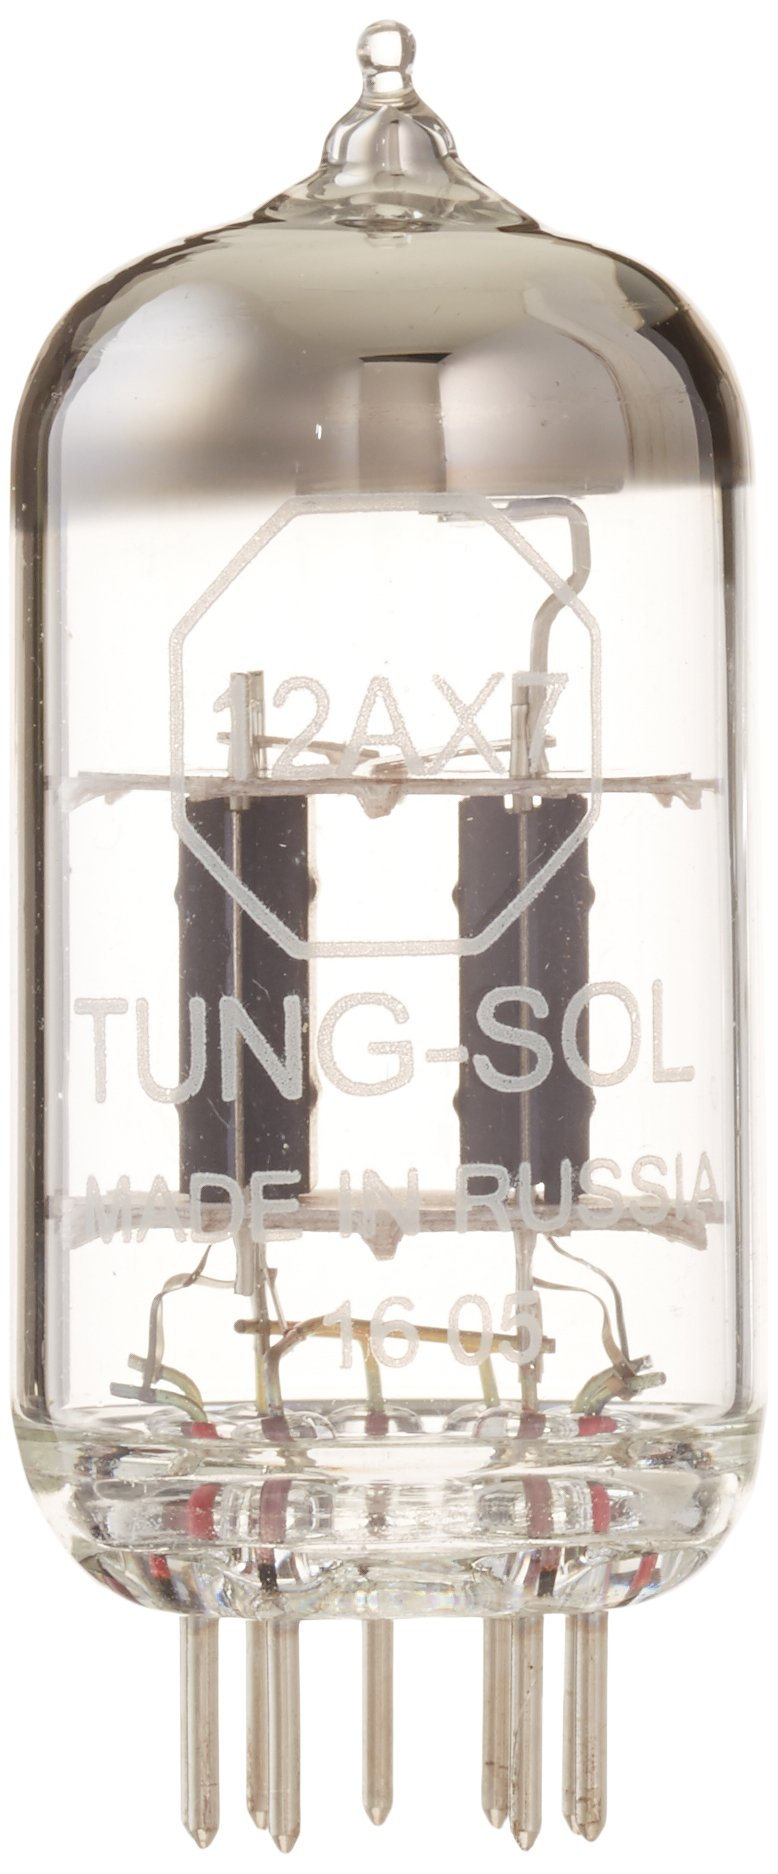 Tung-Sol 12AX7 Preamp Vacuum Tube, Single by Tung-Sol